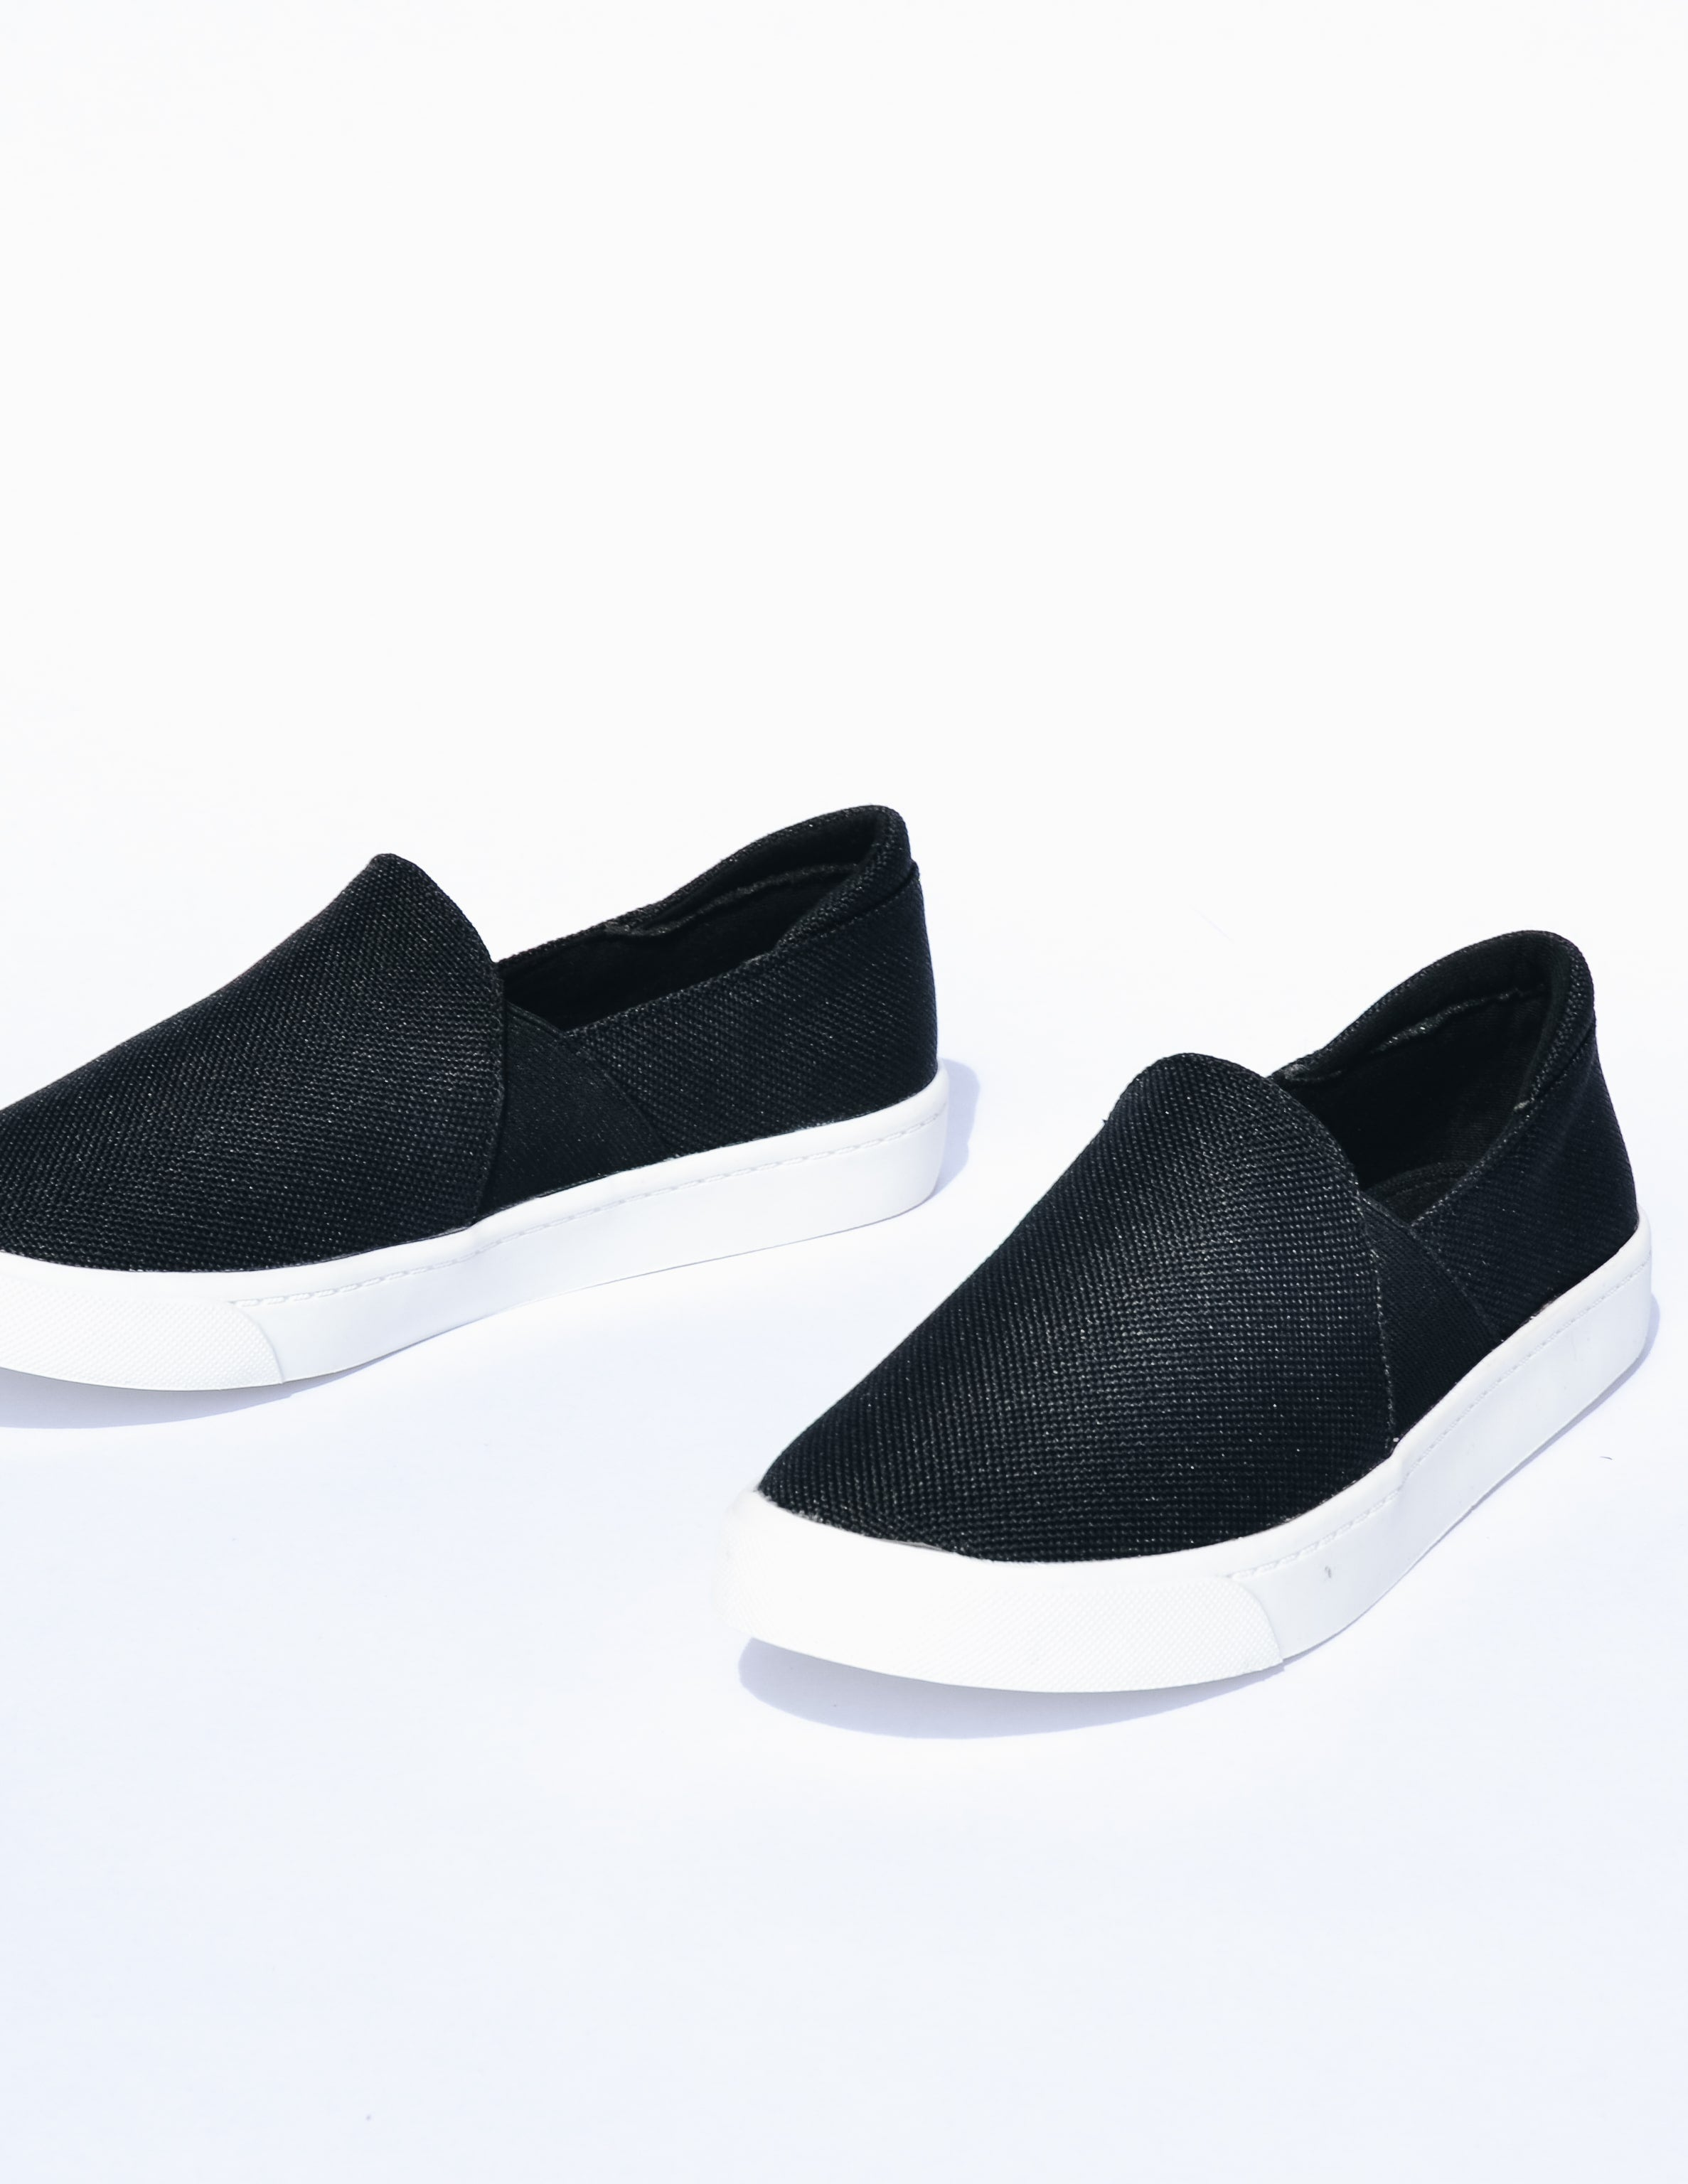 Black weekend wanderer sneaker on white background - elle bleu shoes